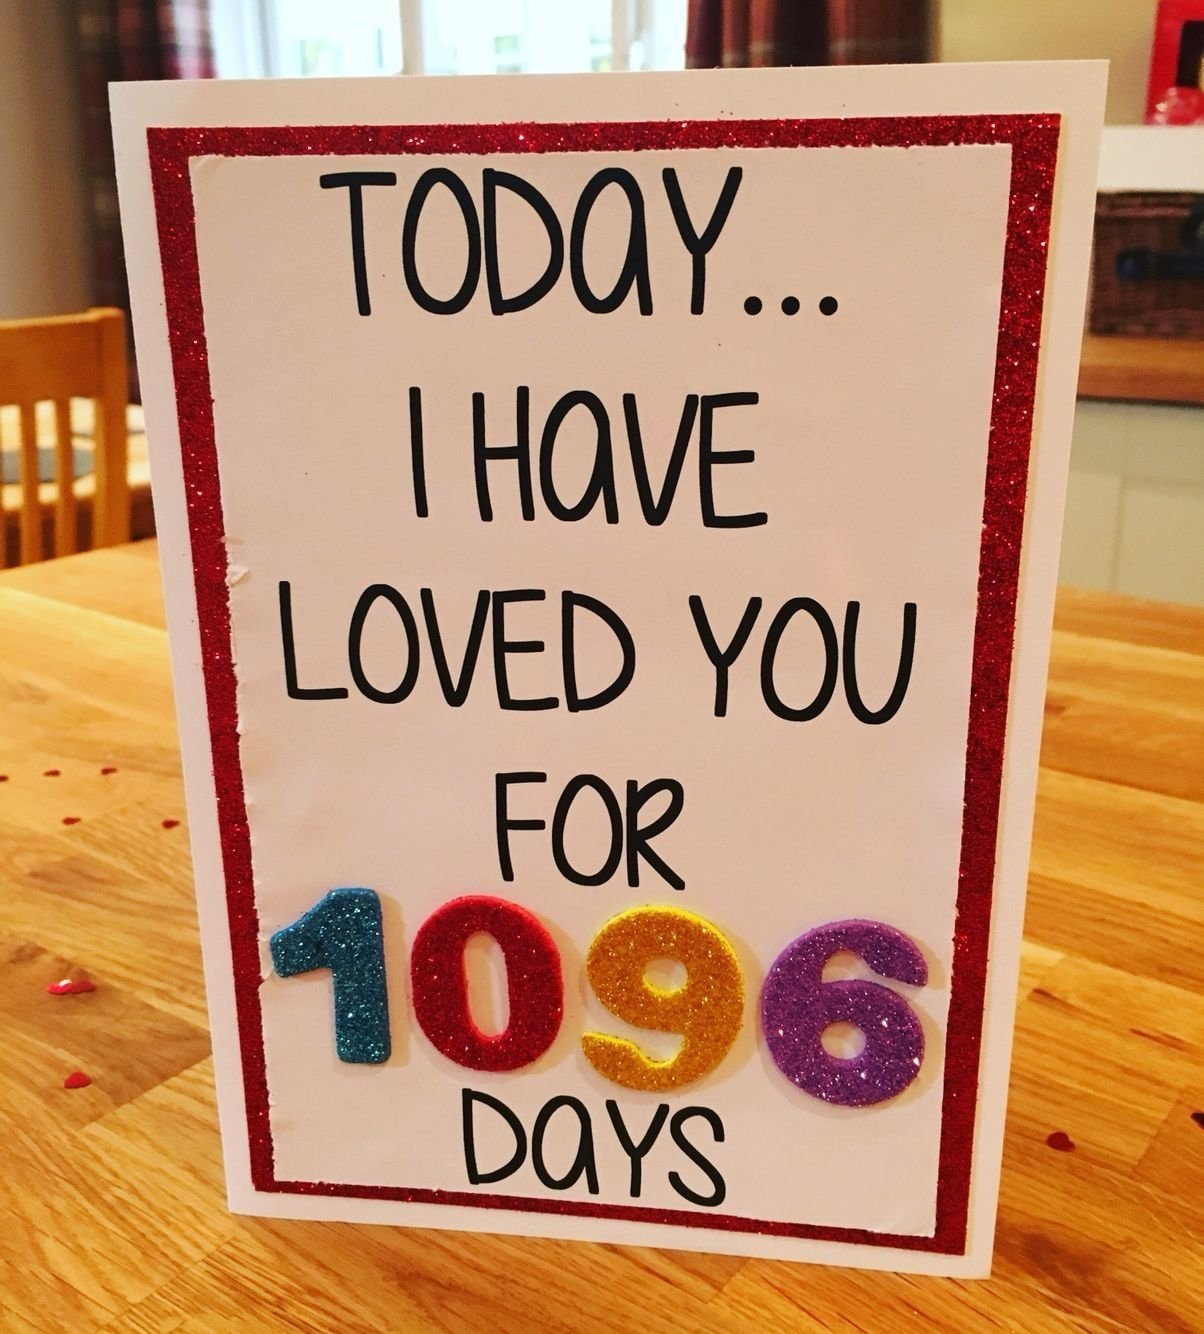 10 Famous Three Year Anniversary Gift Ideas For Him 3 year anniversary card today i have loved you for 1096 days x 2 2020